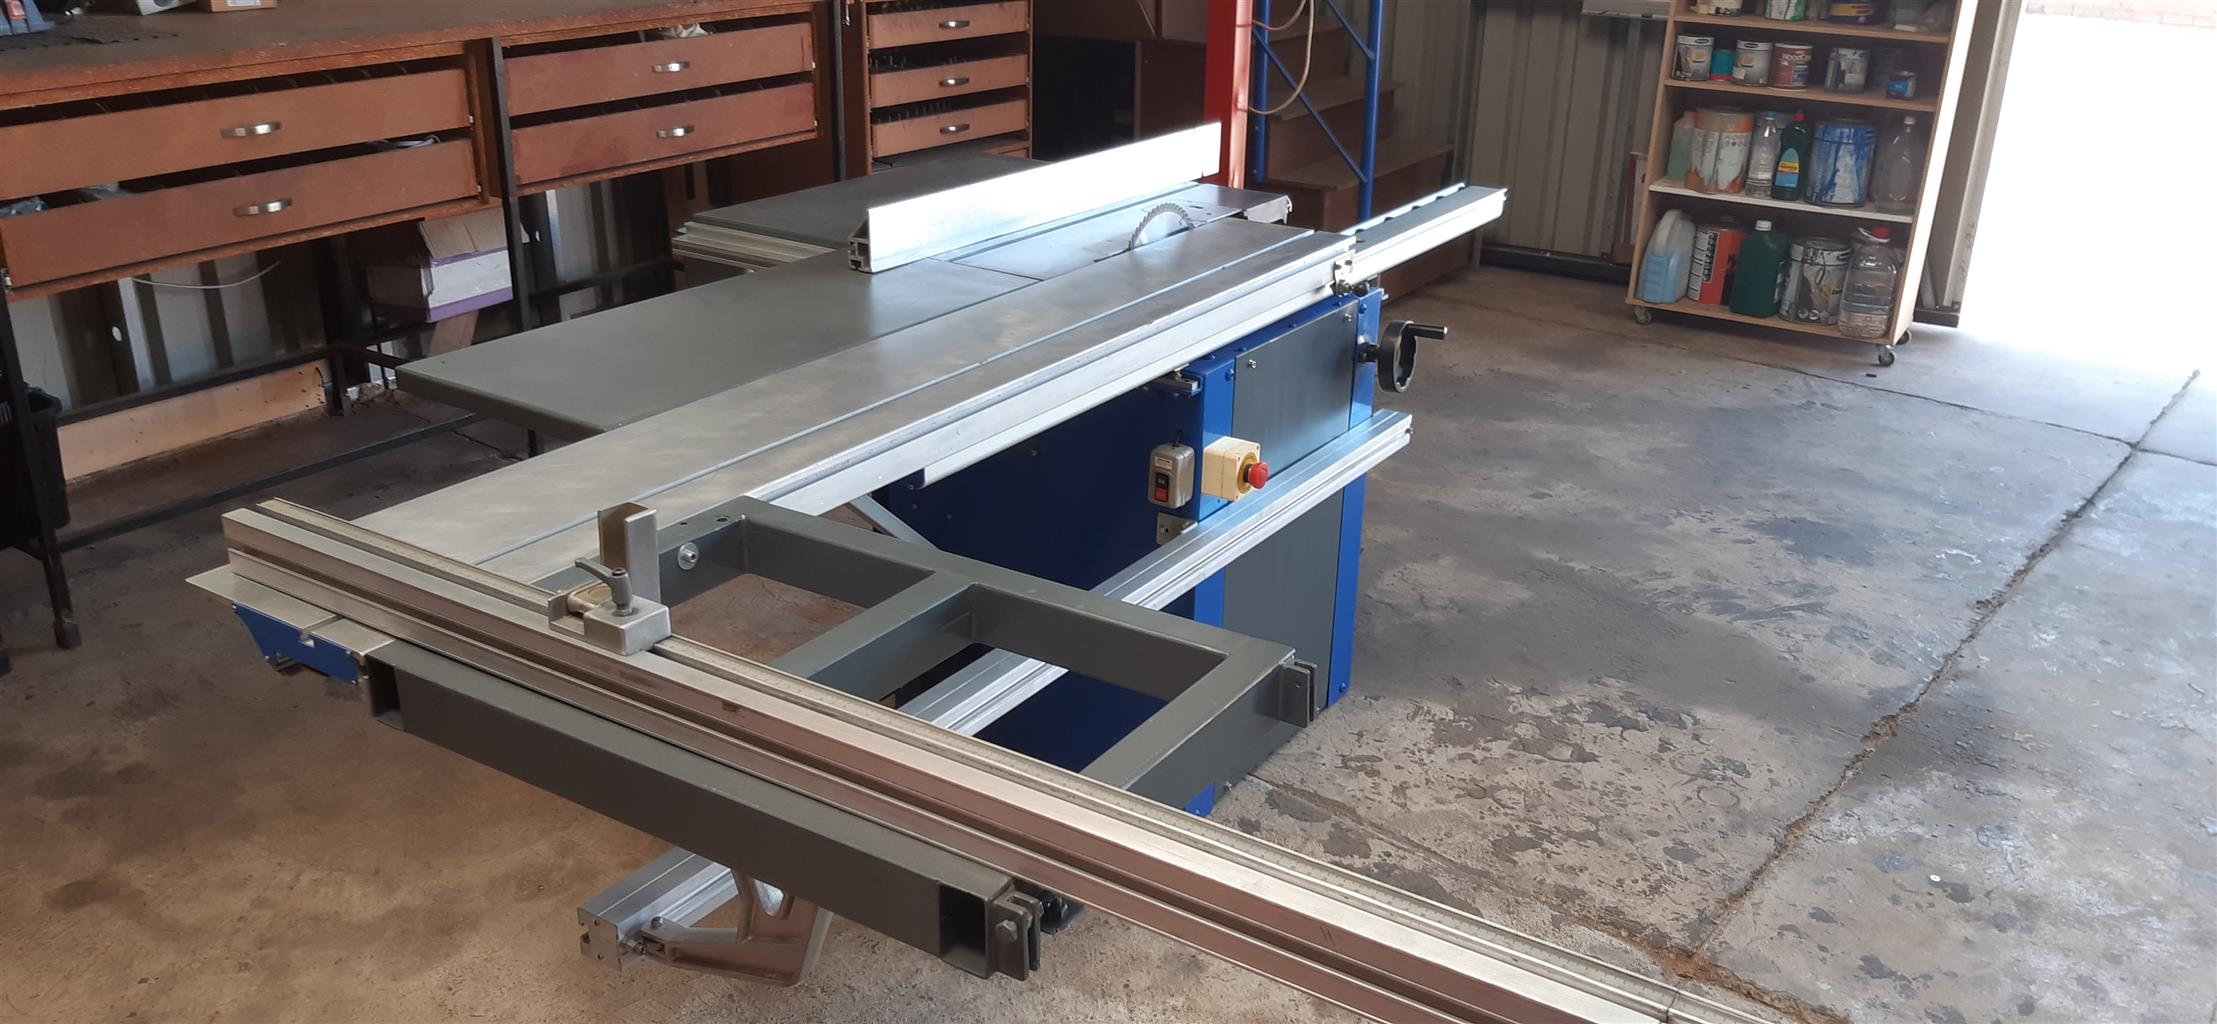 Panel Saw for Sale - MacAfric-MJ6-1800 in Excellent Condition